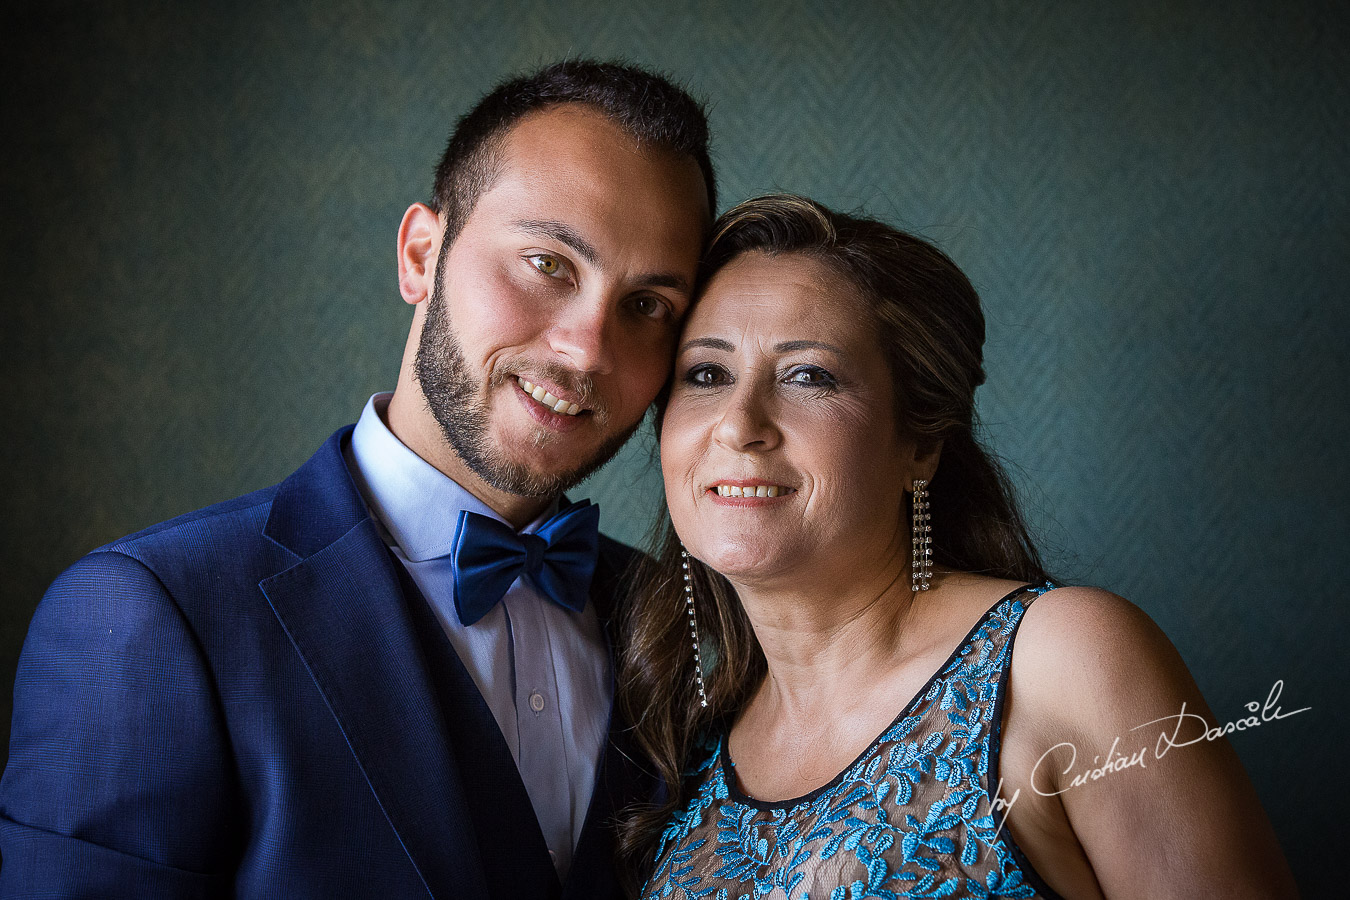 Genuine moments with the groom and his mother, as part of an Exclusive Wedding photography at Grand Resort Limassol, captured by Cyprus Wedding Photographer Cristian Dascalu.